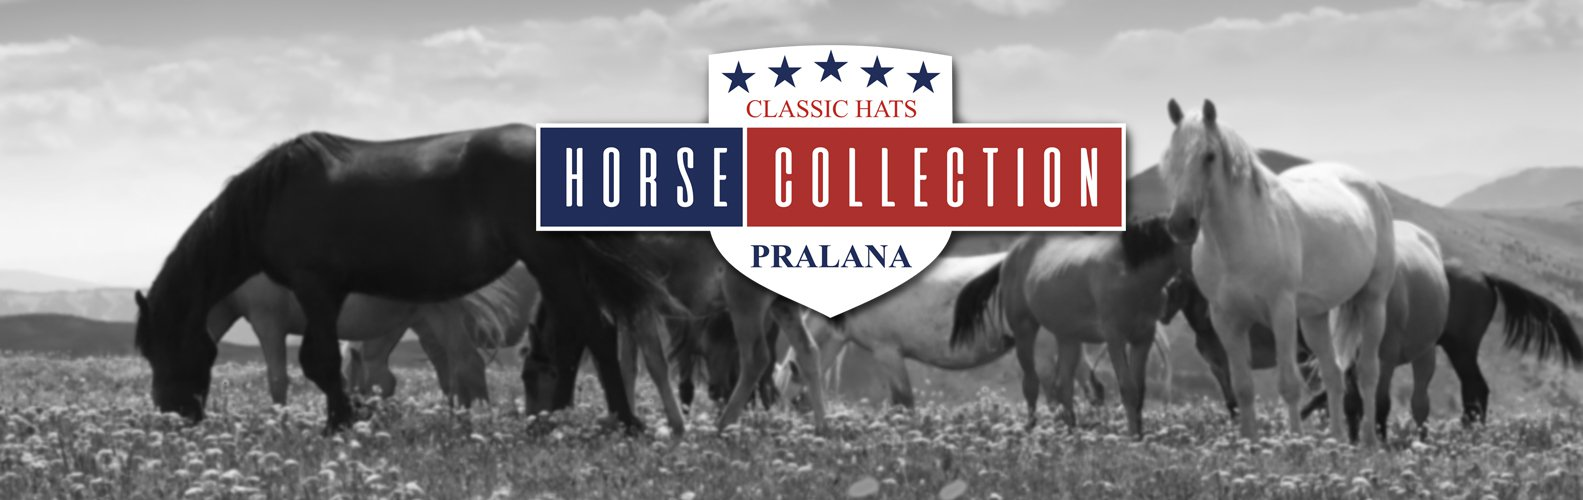 Horse Collection!